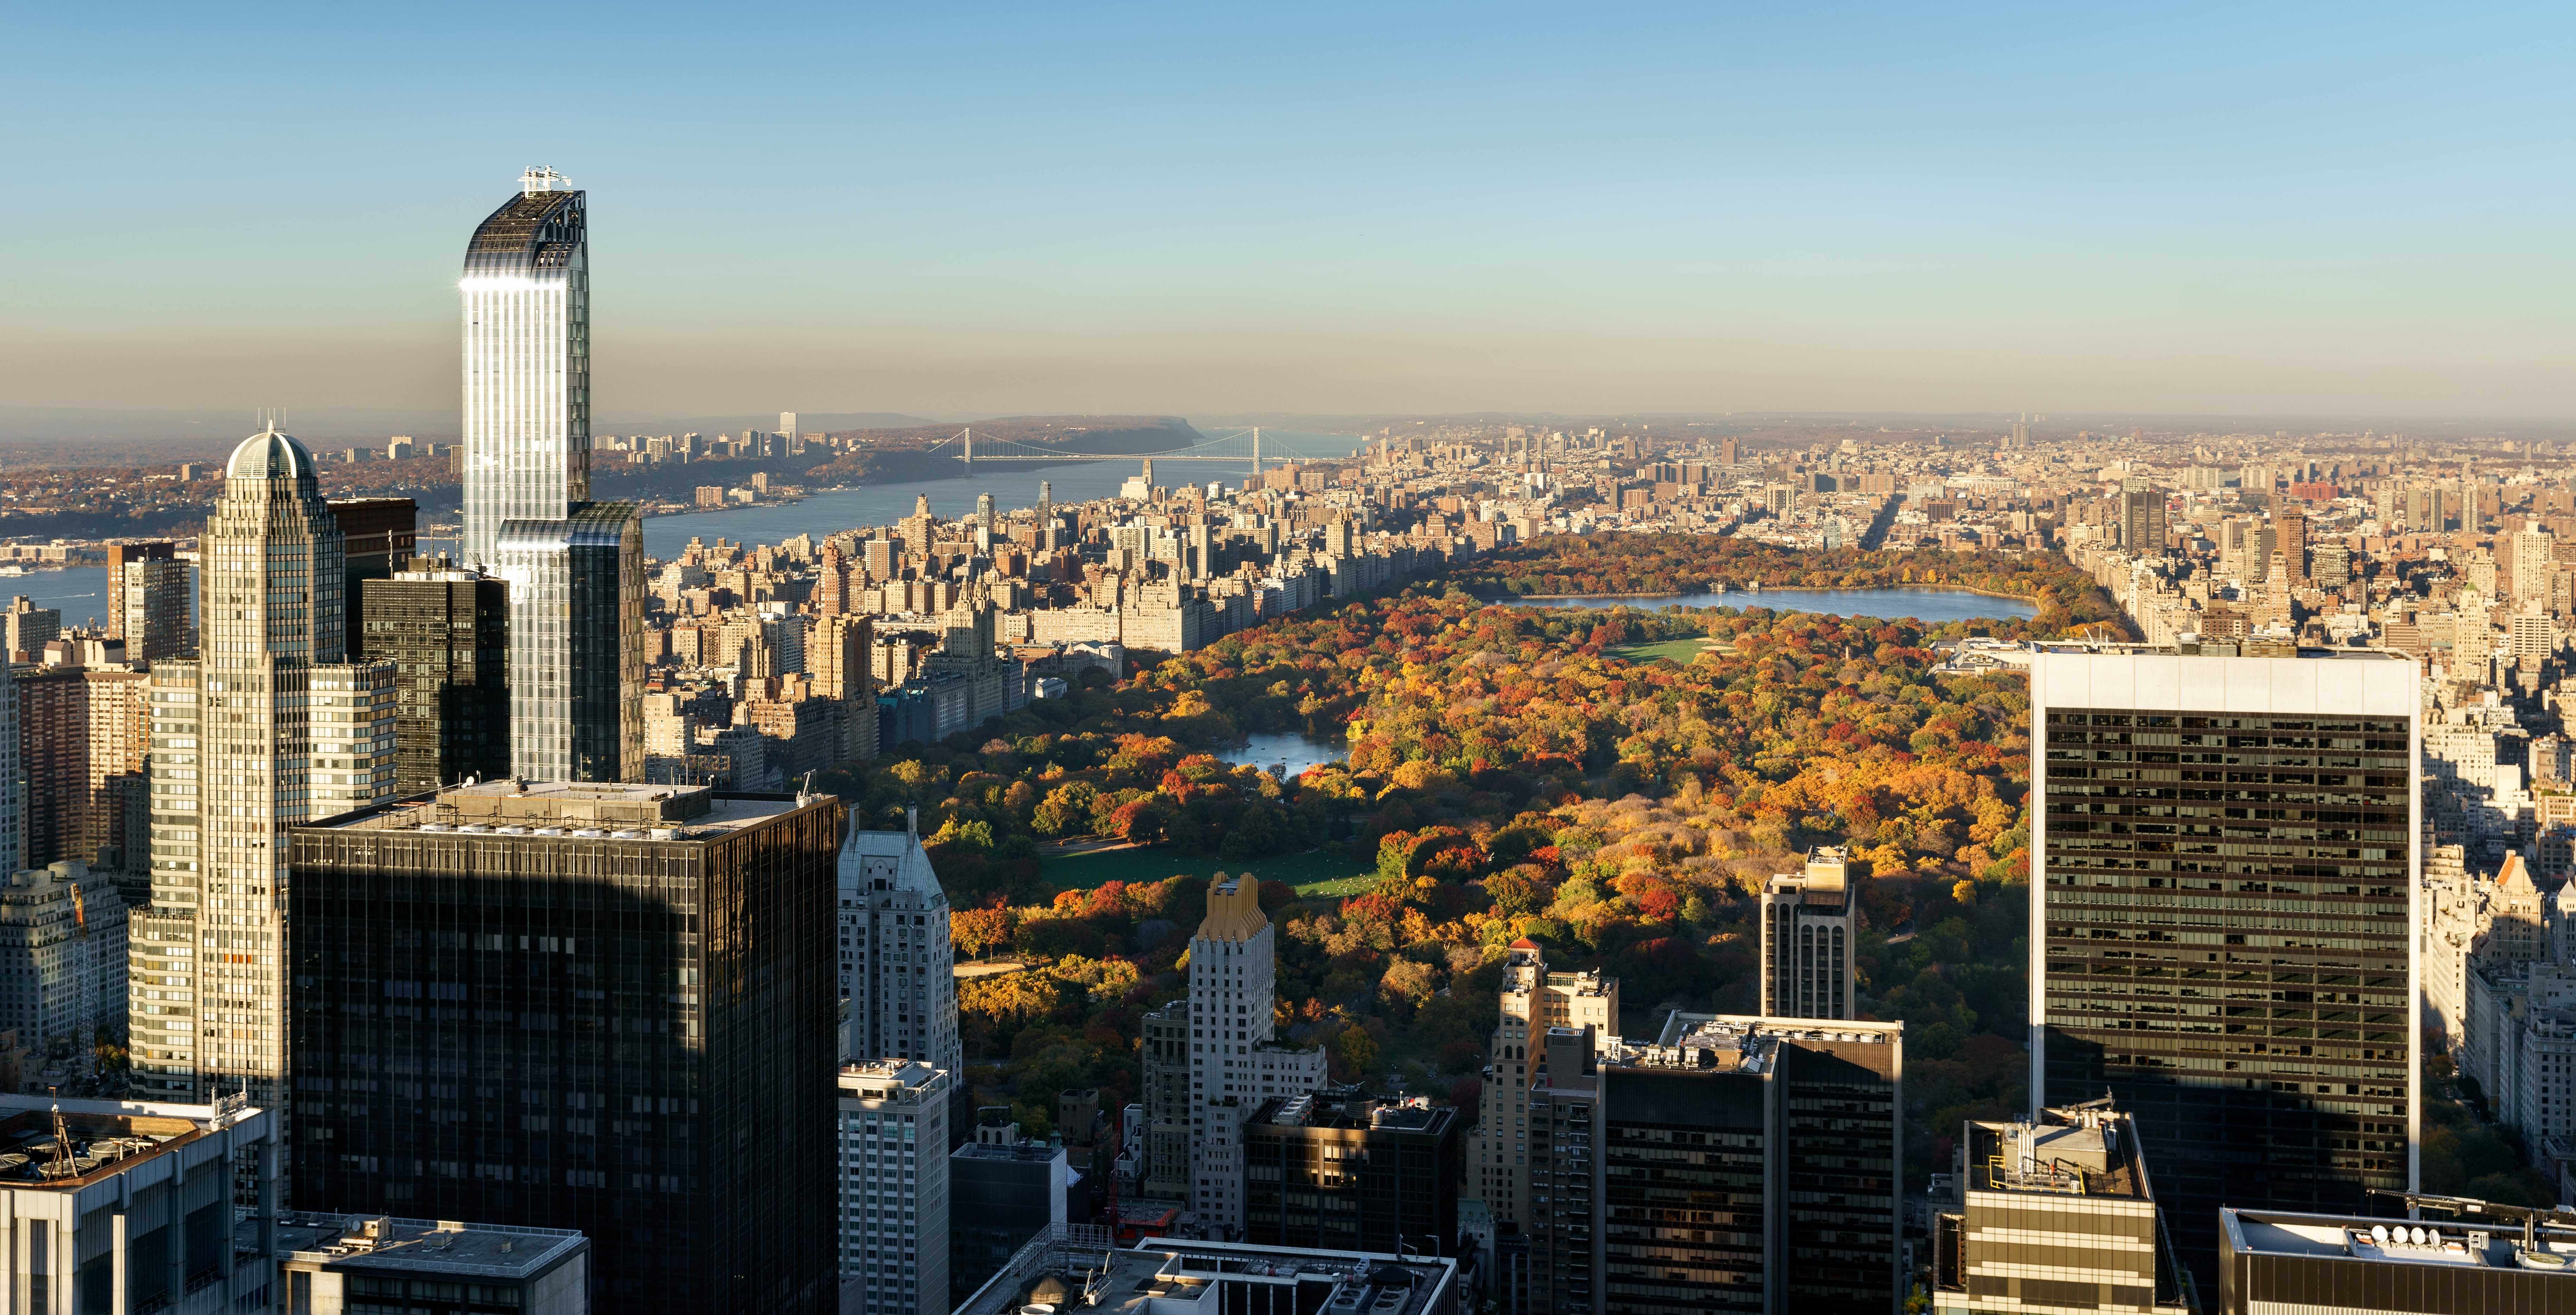 Aerial View, Central Park in Fall with Midtown skyscrapers, NYC